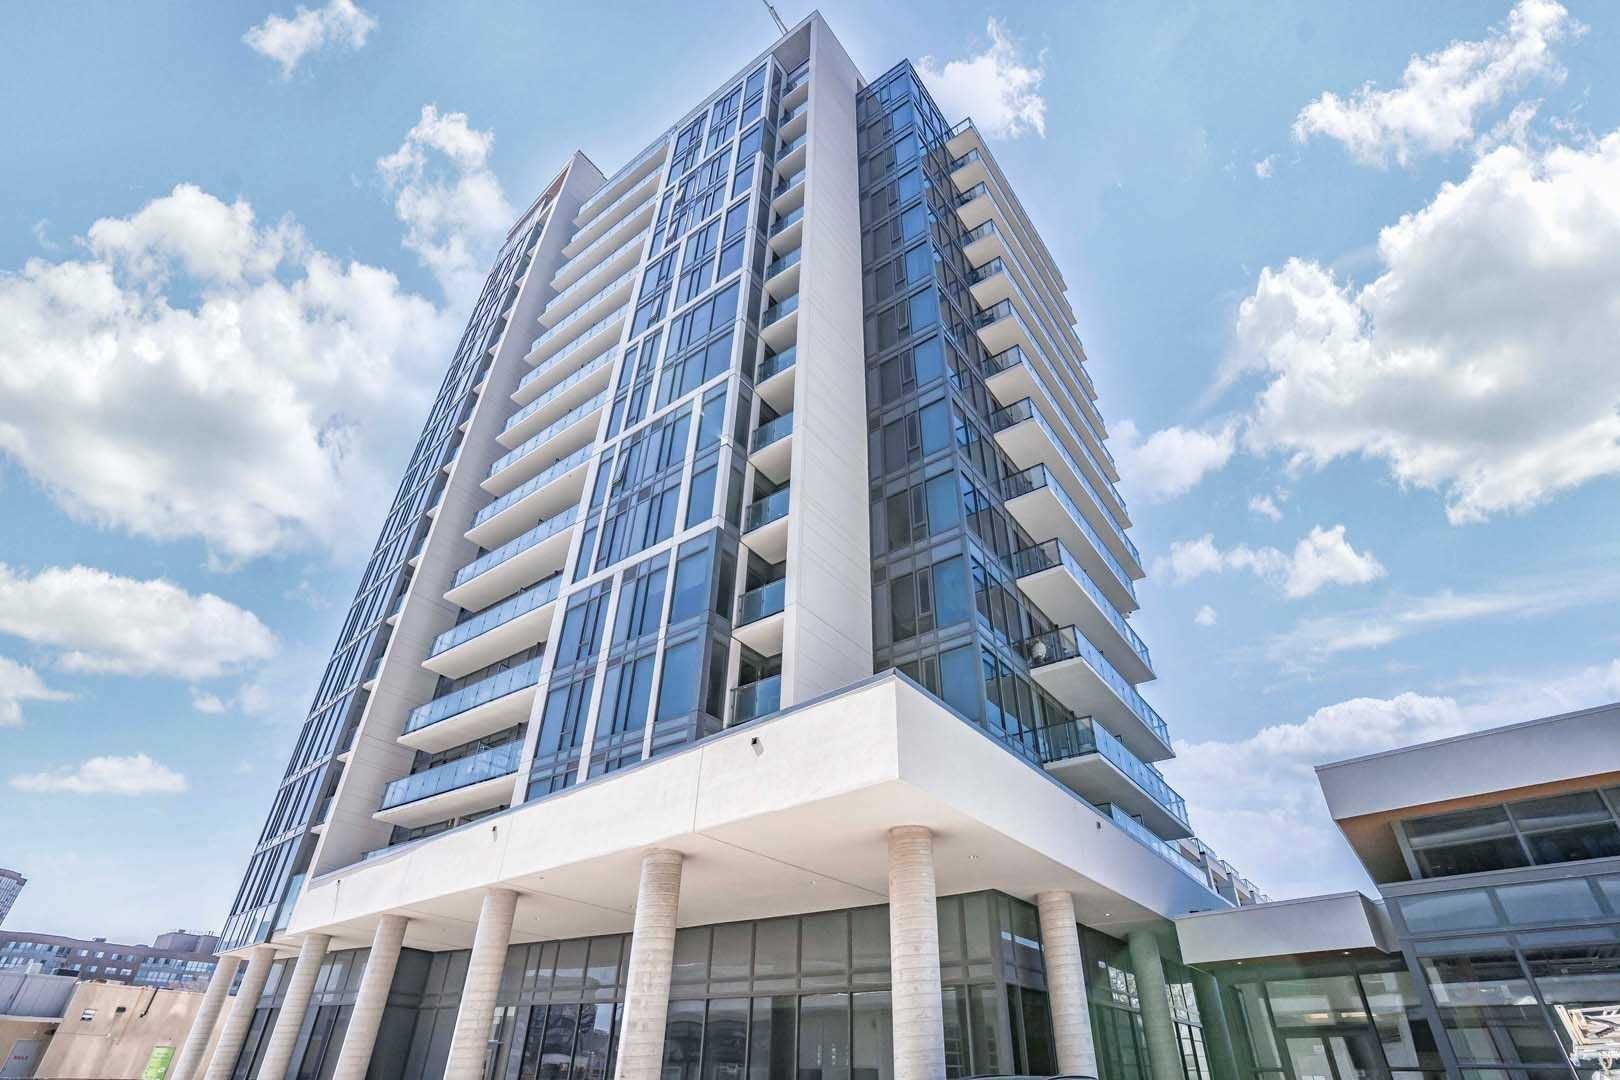 9618 Yonge St, unit 706 for rent in Toronto - image #1